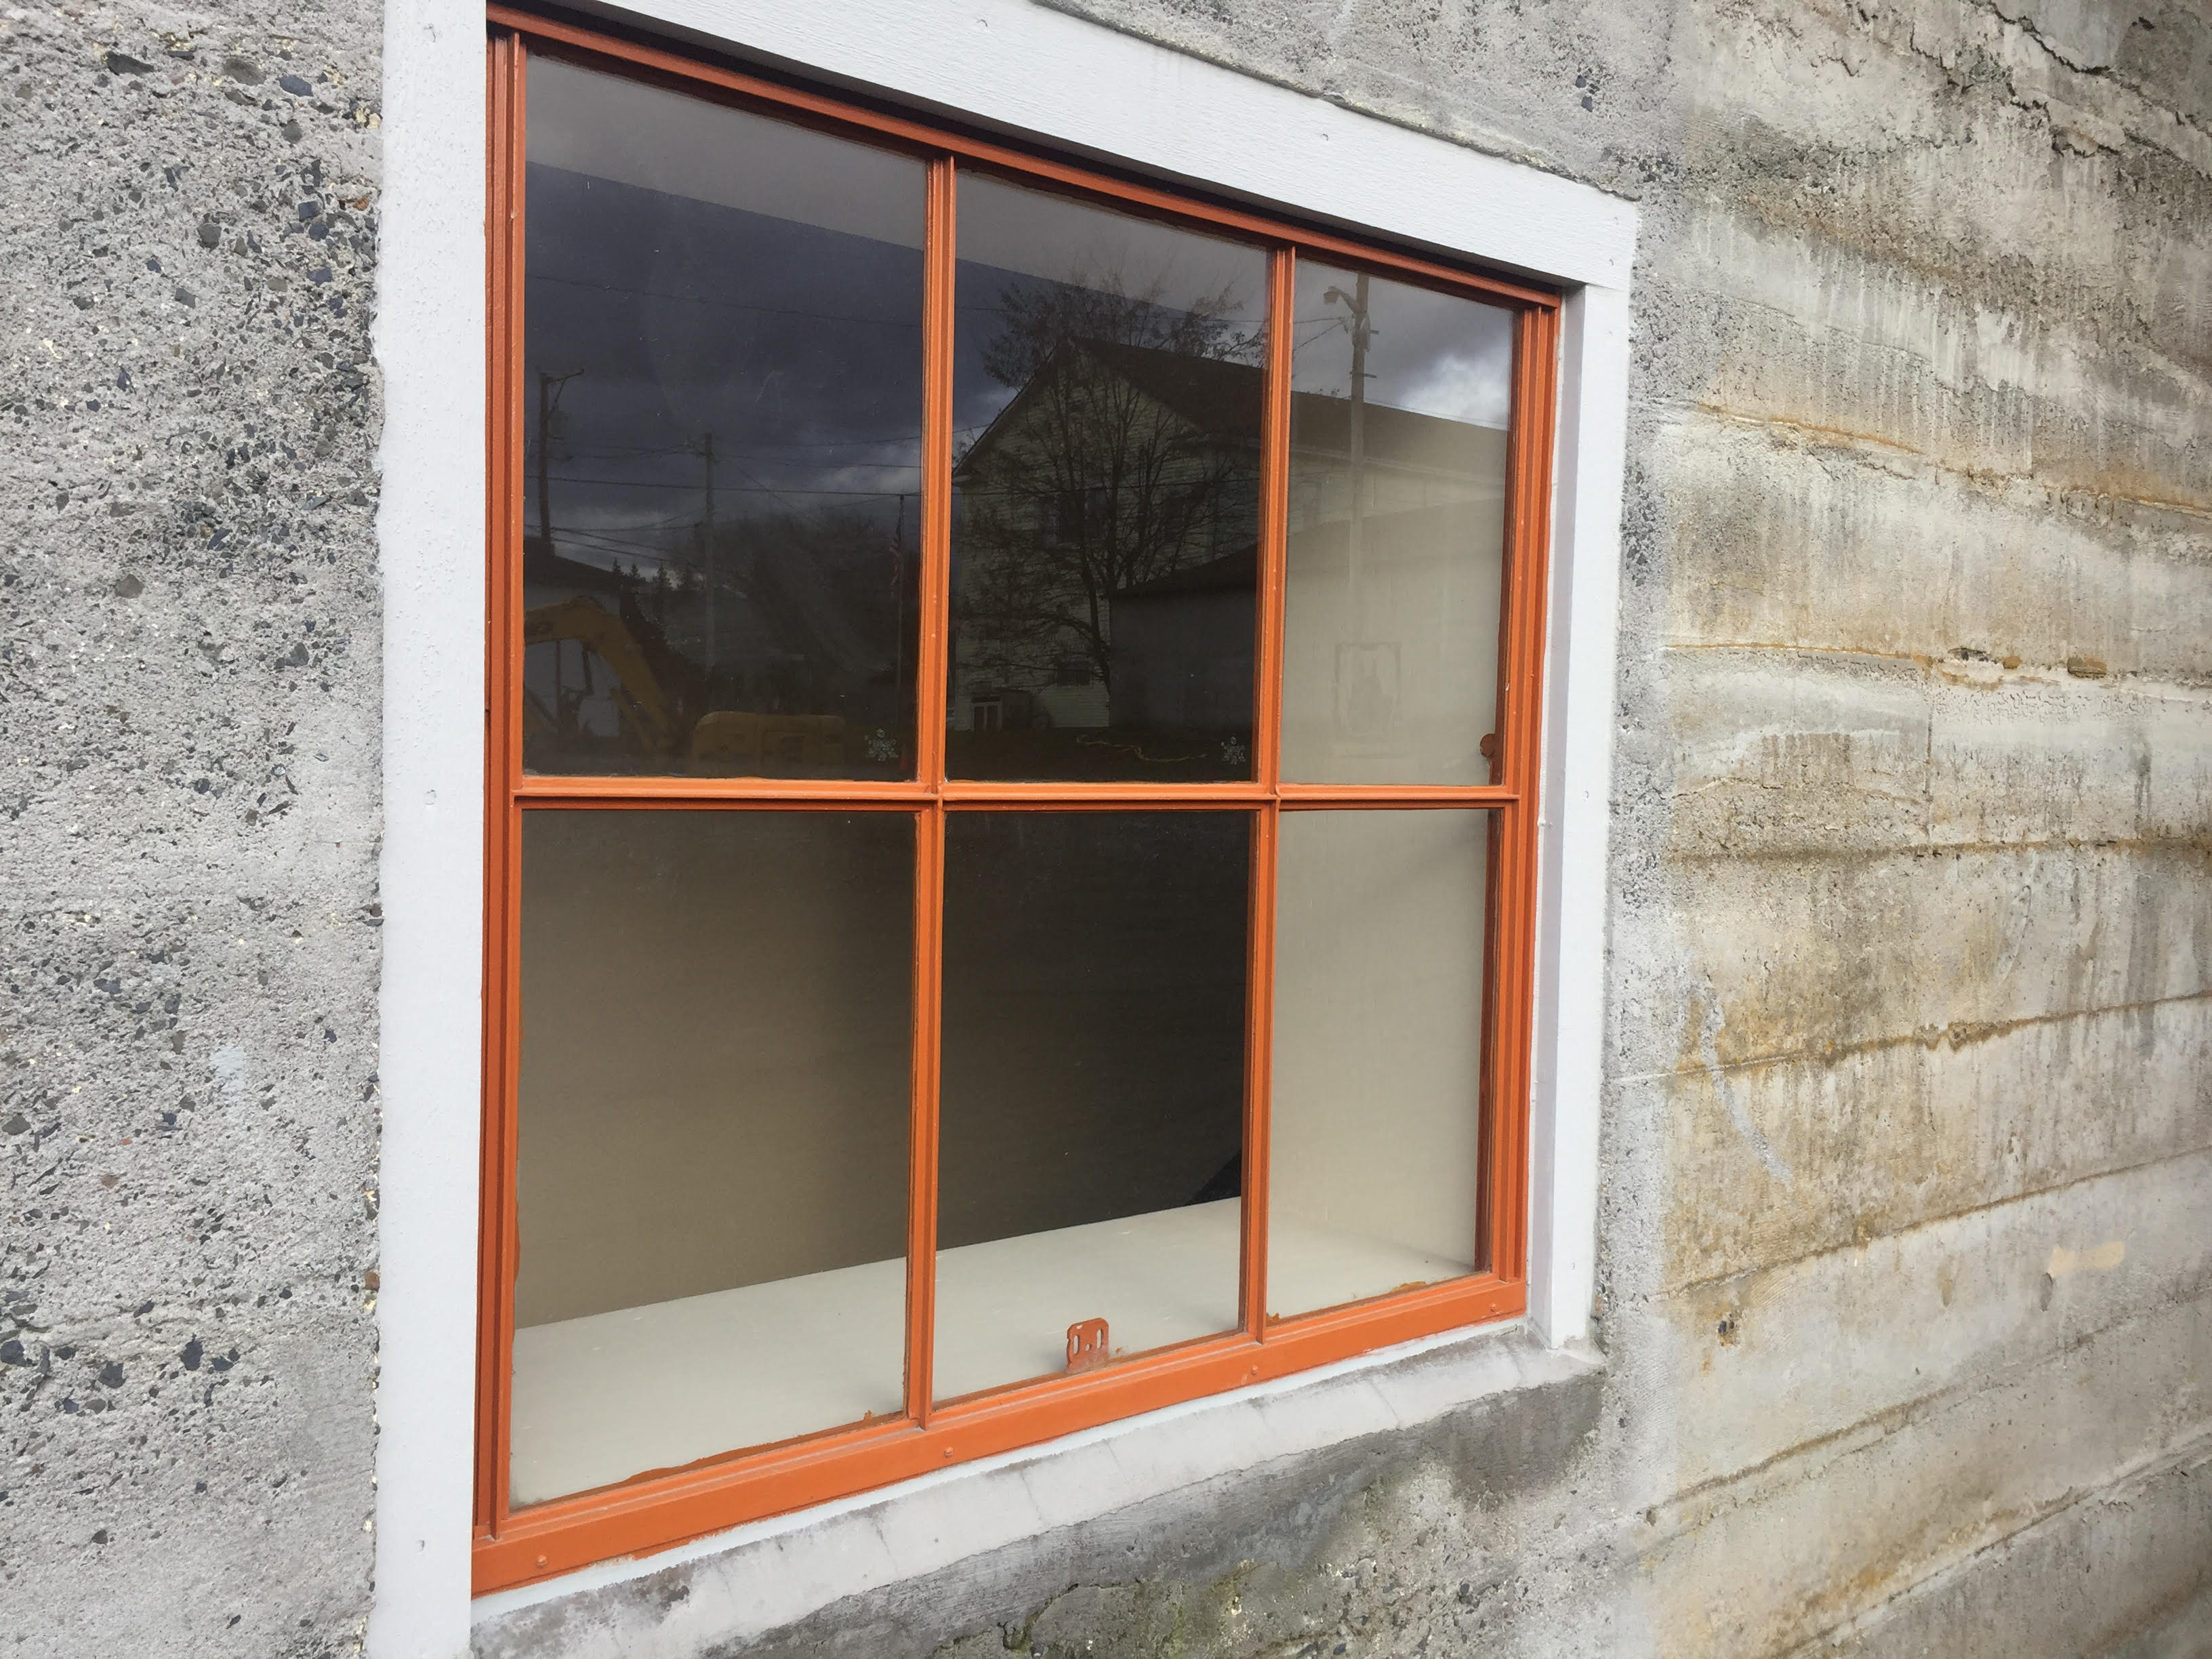 Historic Steel Pane Windows